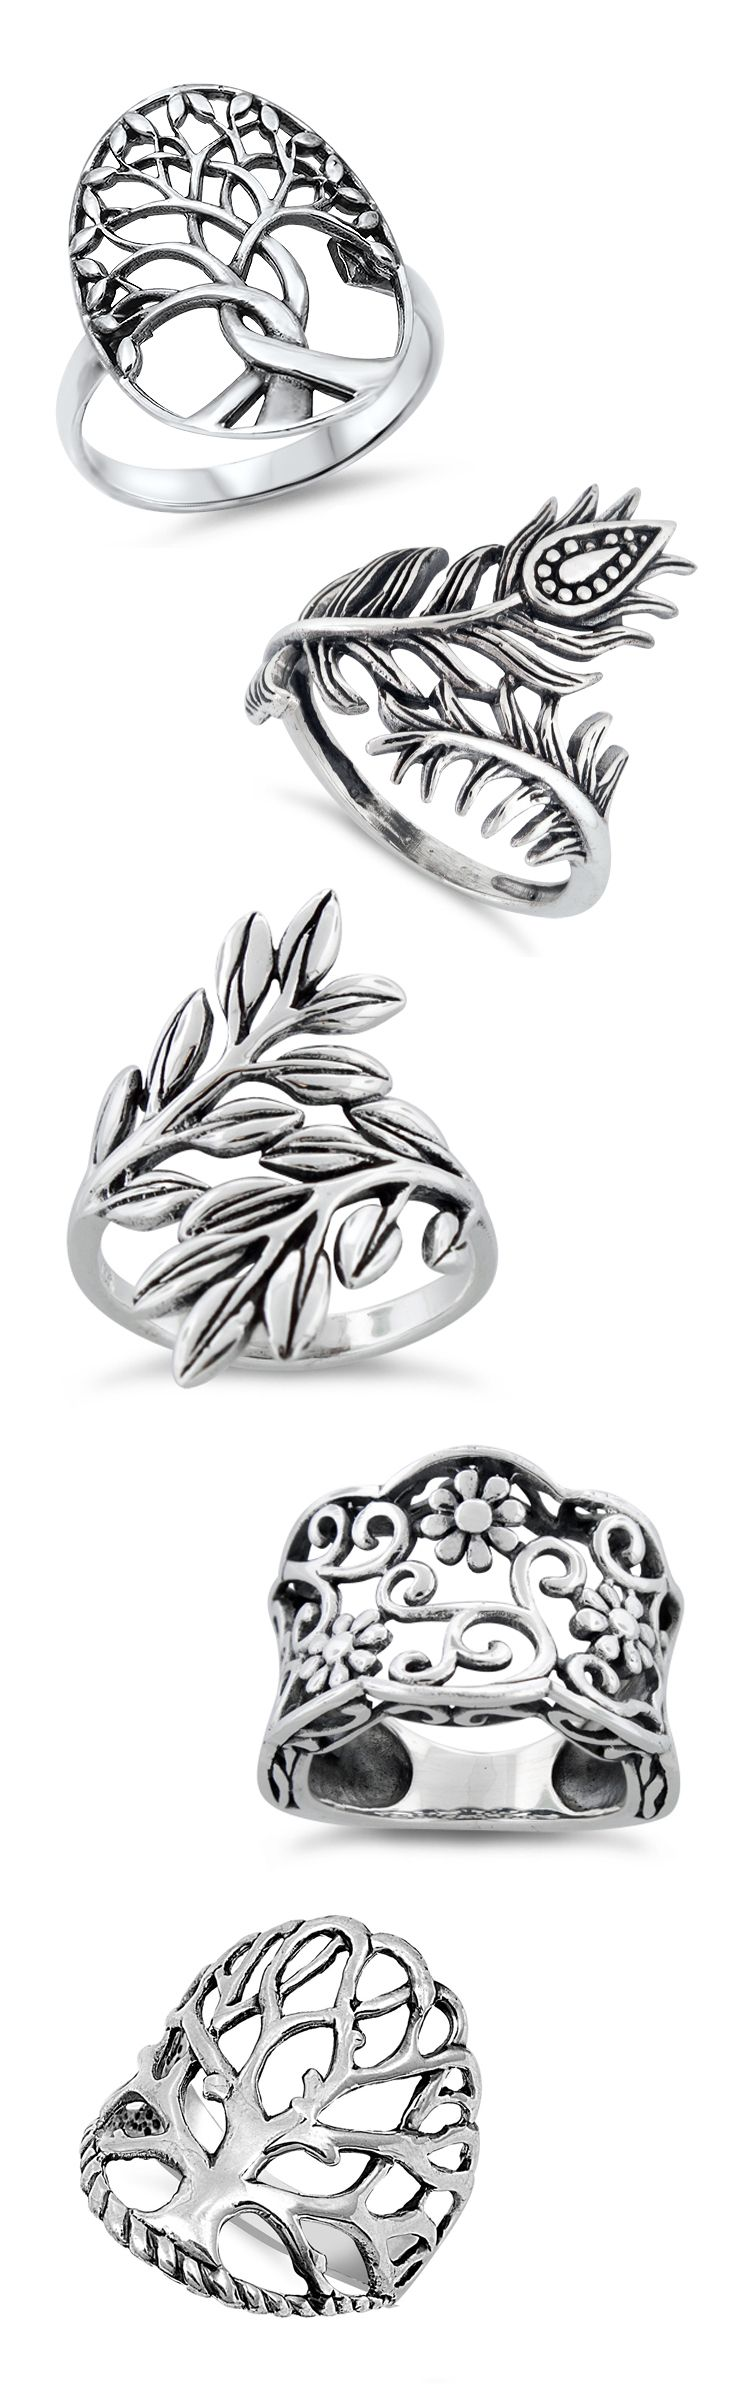 Tree of Life & Floral Rings in Sterling Silver